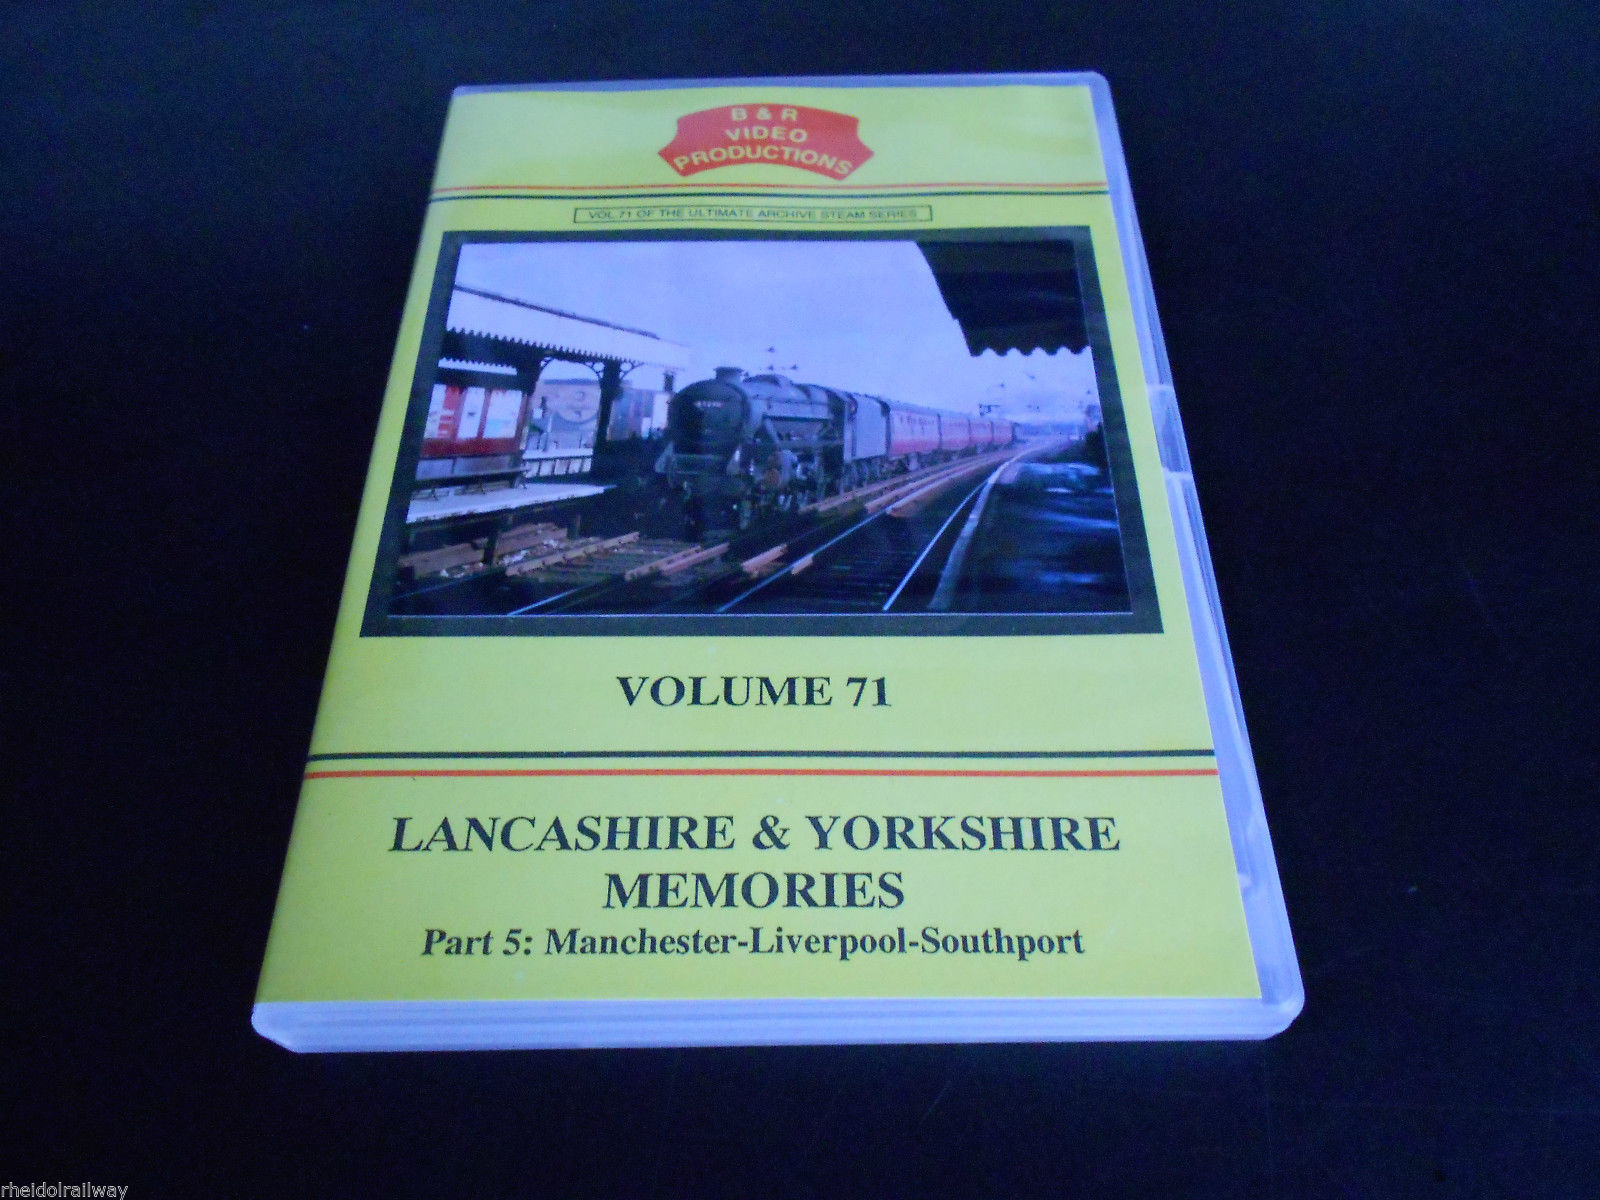 Manchester-Liverpool-Southport Part 5 Lancashire & Yorkshire Memories Vol.71 DVD